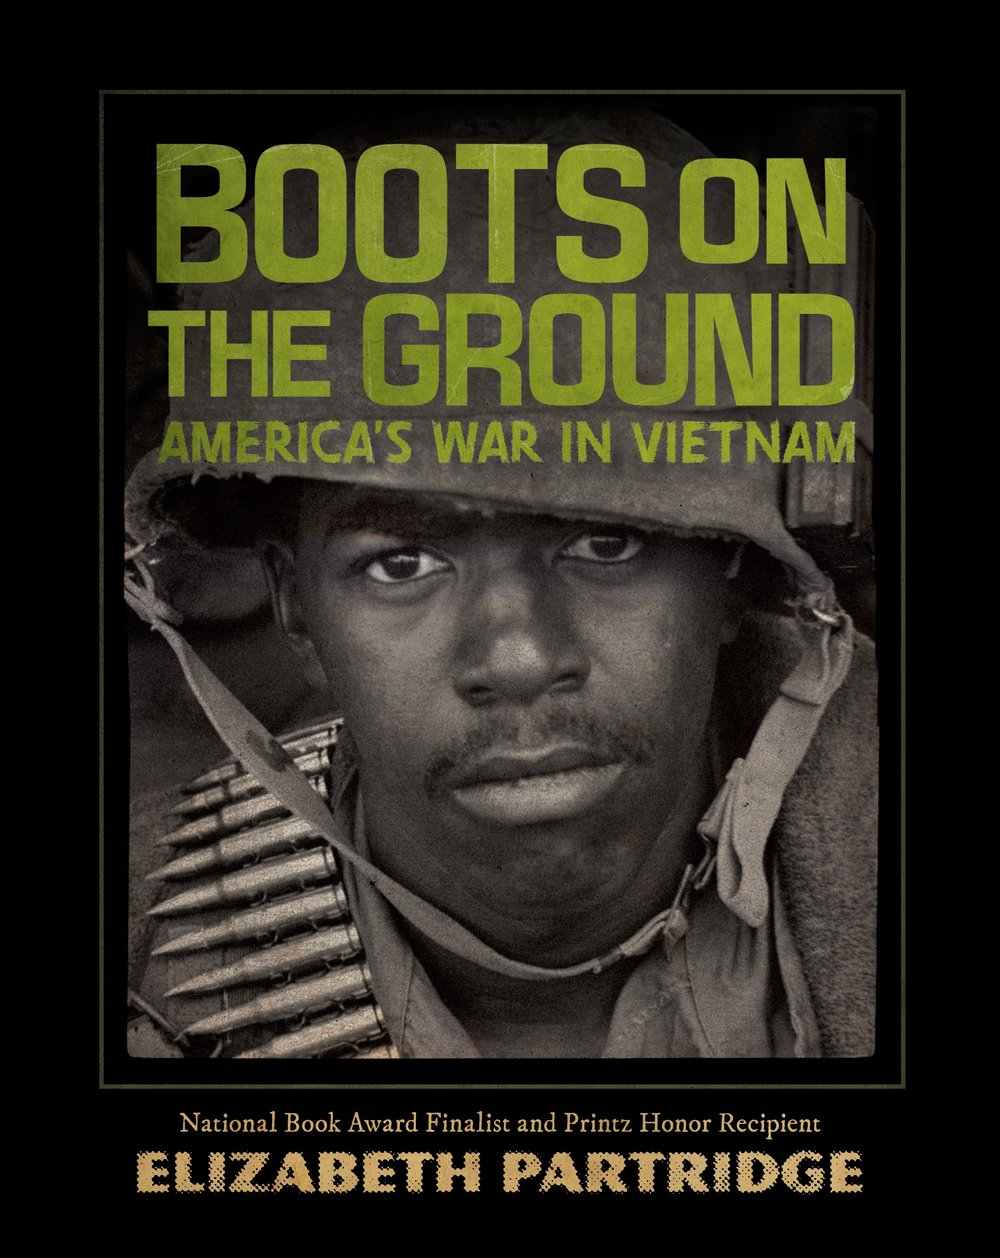 Boots on the Ground: America's War in Vietnam   - The Vietnam War directly involved four U.S. presidents and cut short the lives of nearly 60,000 American soldiers during more than a decade of fighting. It polarized and divided our country in ways that still have not healed.The history of this era is complex; the cultural impact extraordinary. But it's the personal stories of eight people—six American soldiers, one American nurse, and one Vietnamese refugee—that create the heartbeat of Boots on the Ground. From dense jungles and terrifying firefights to chaotic medic rescues and evacuations, each individual experience reveals a different facet of the war and moves us forward in time. Alternating with these chapters are profiles of key American leaders and events, reminding us of all that was happening at home, from Kent State to Woodstock to Watergate.Viking Young Readers 2018